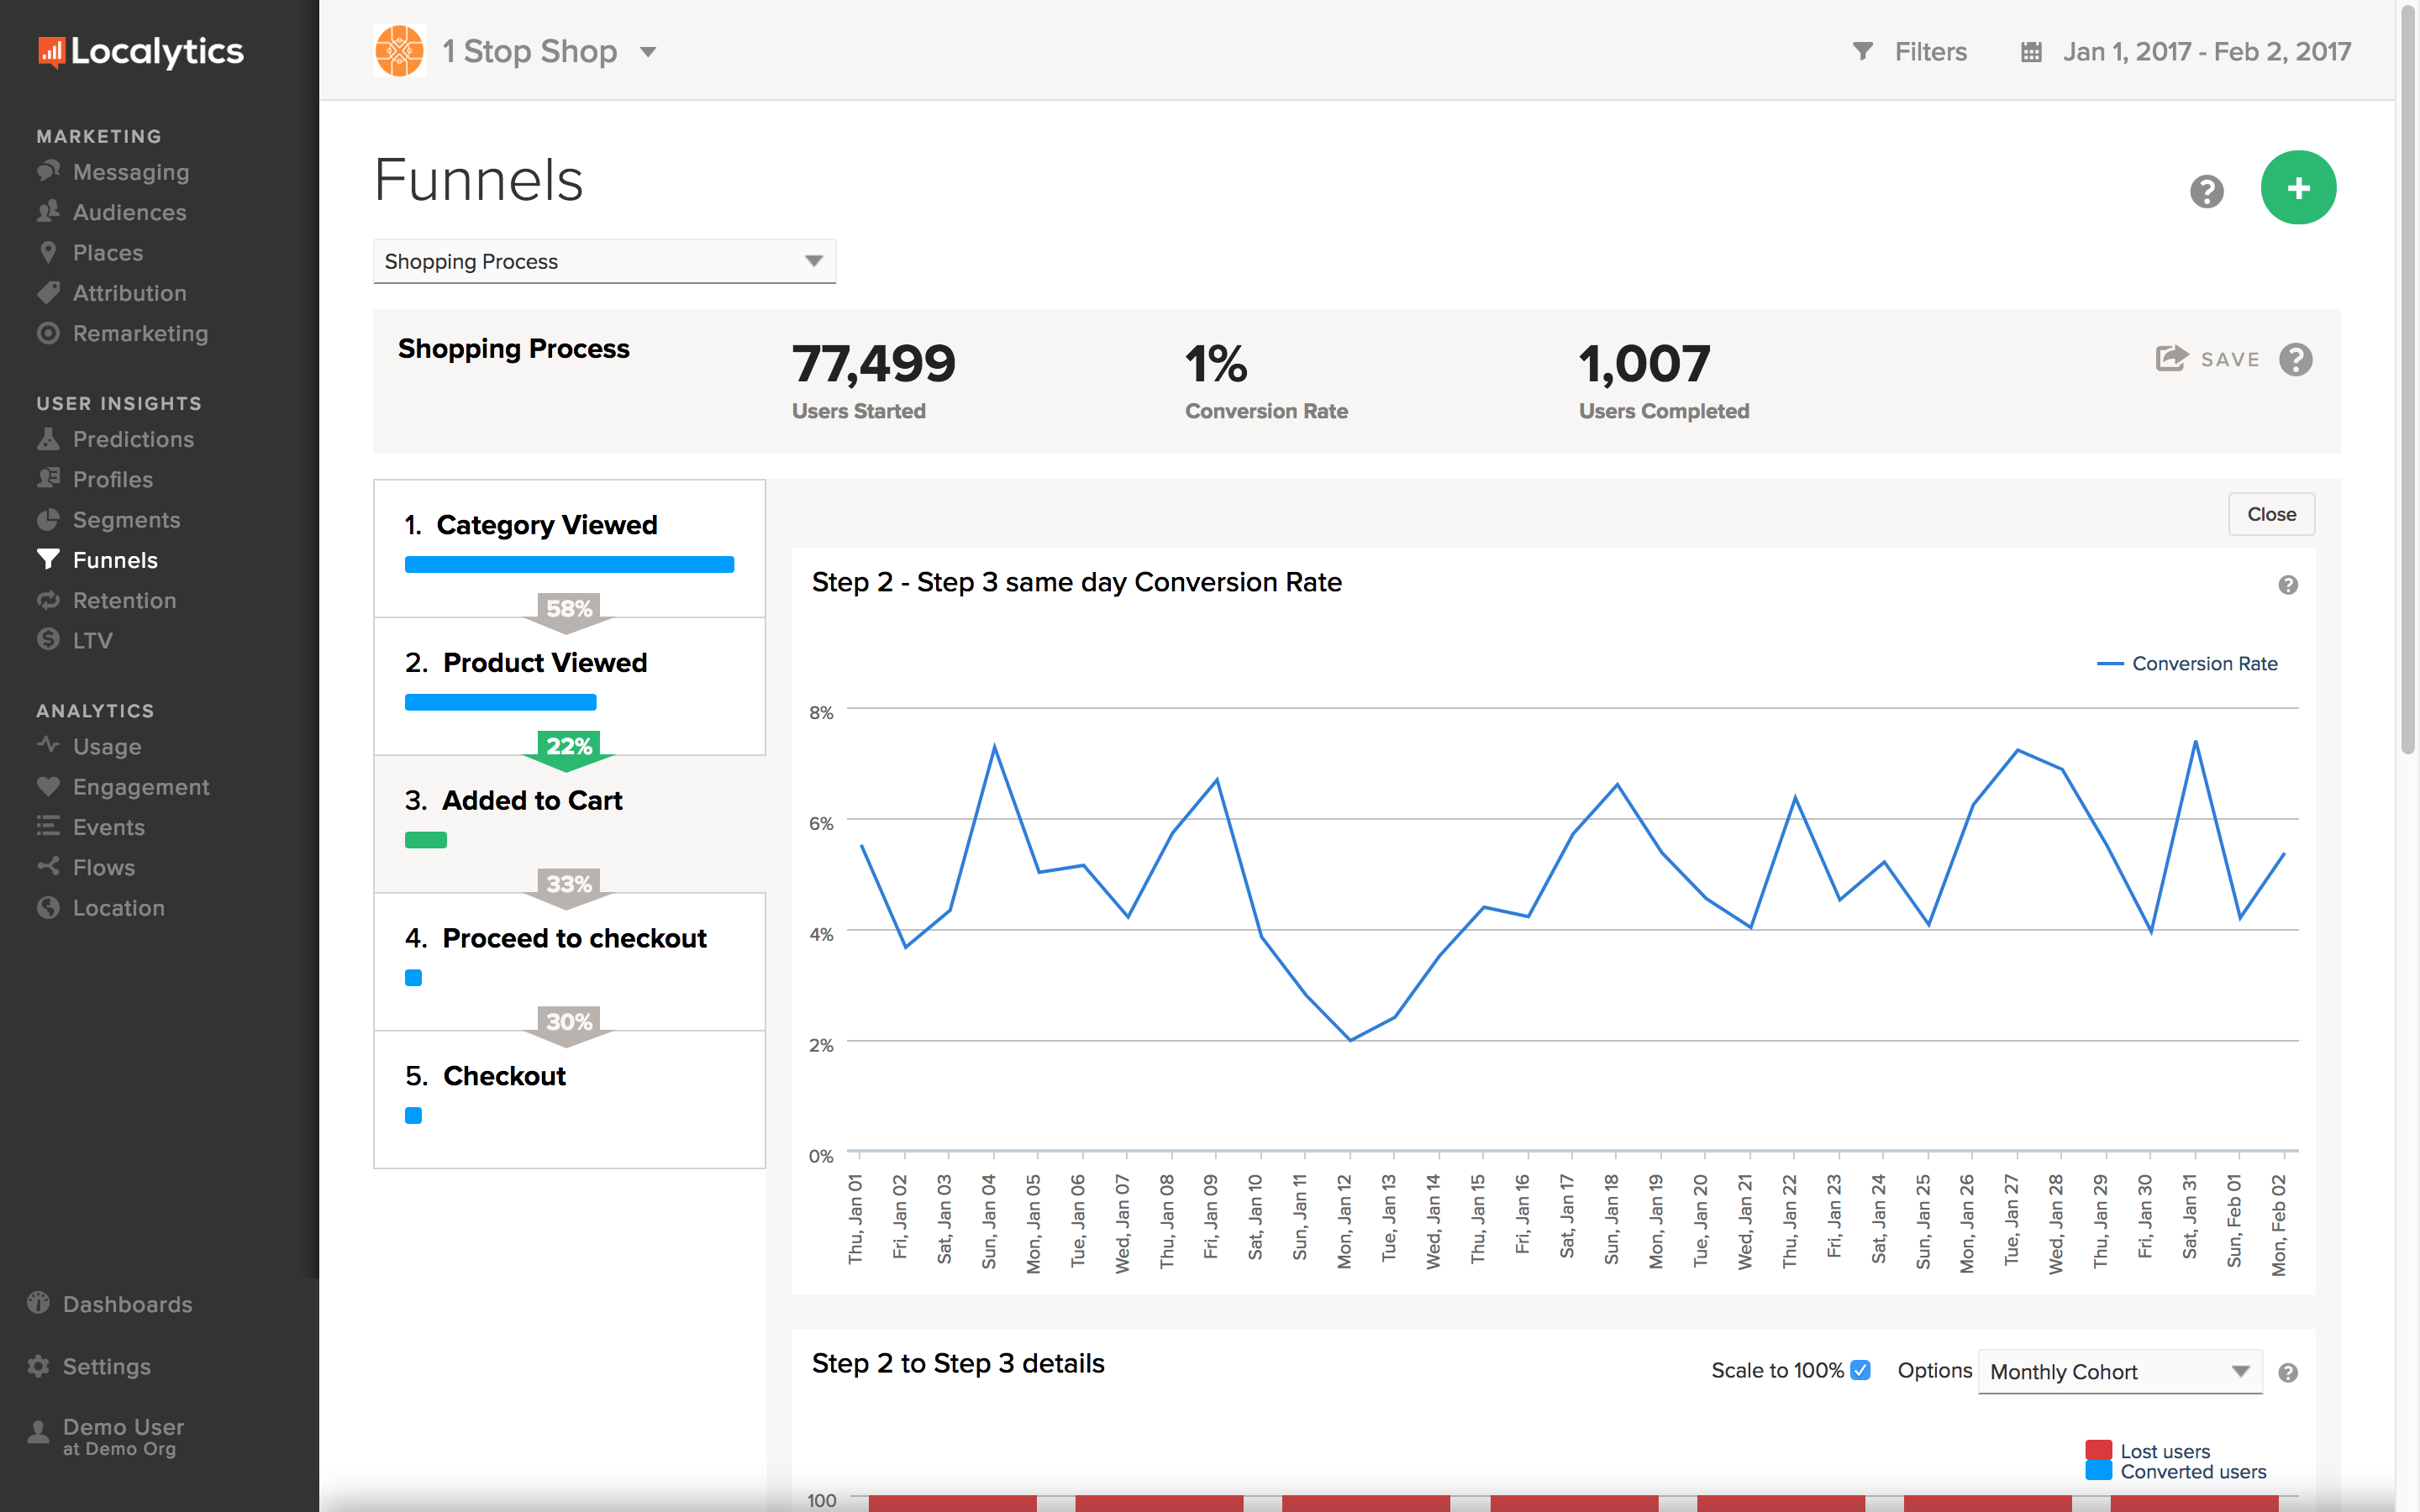 Provides a variety of analytics tools to understand users and engagement.